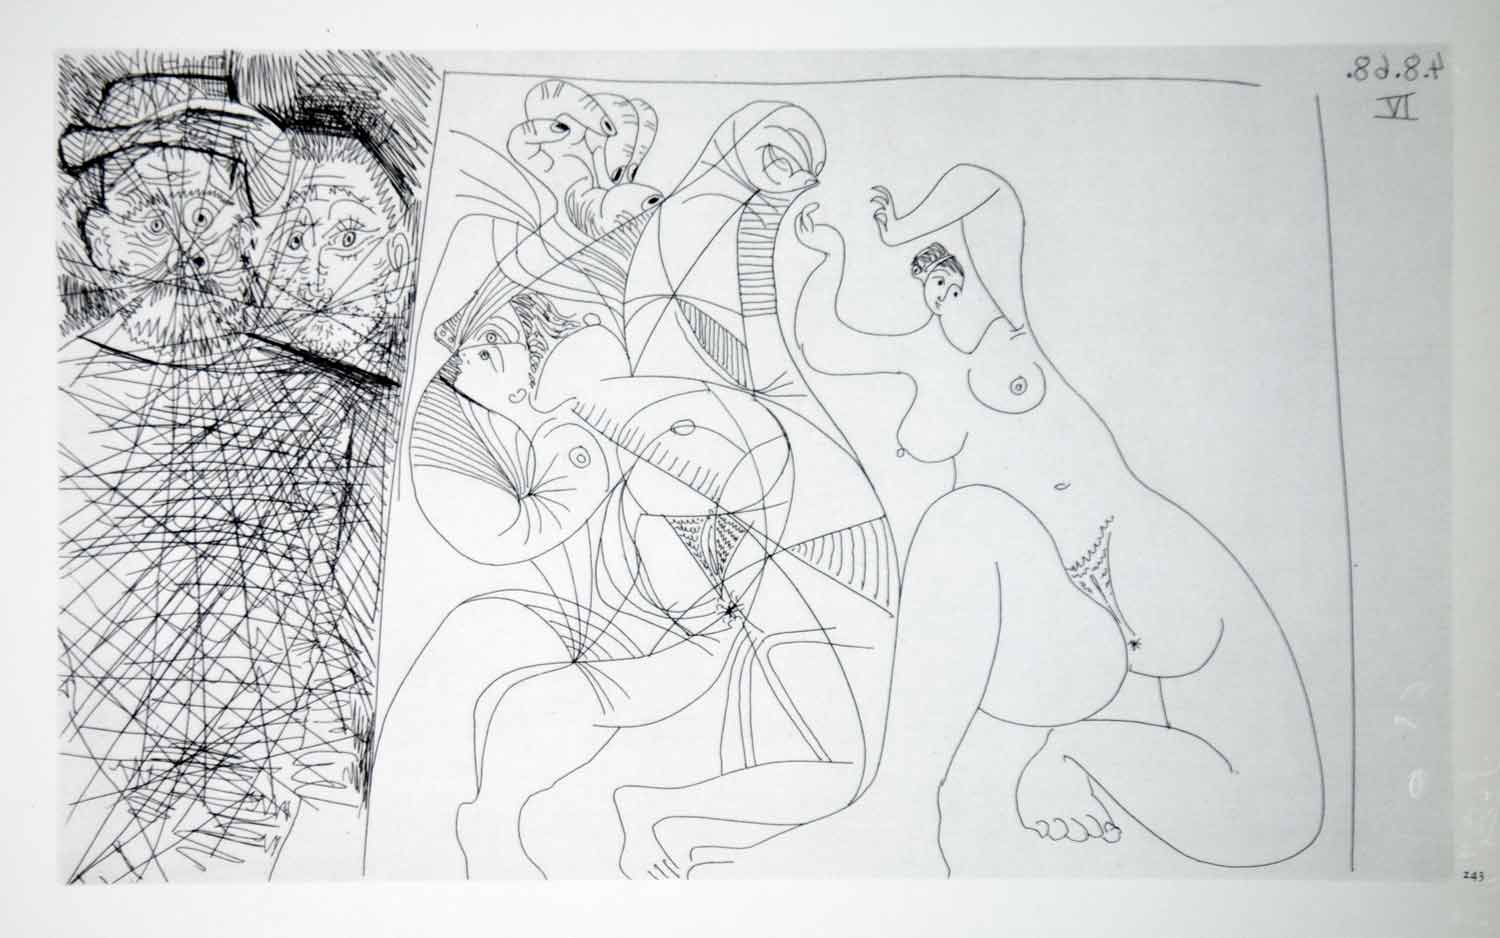 1970 Heliogravure Picasso Nudes Female Body Abstract Art Men Faces Etching P347B